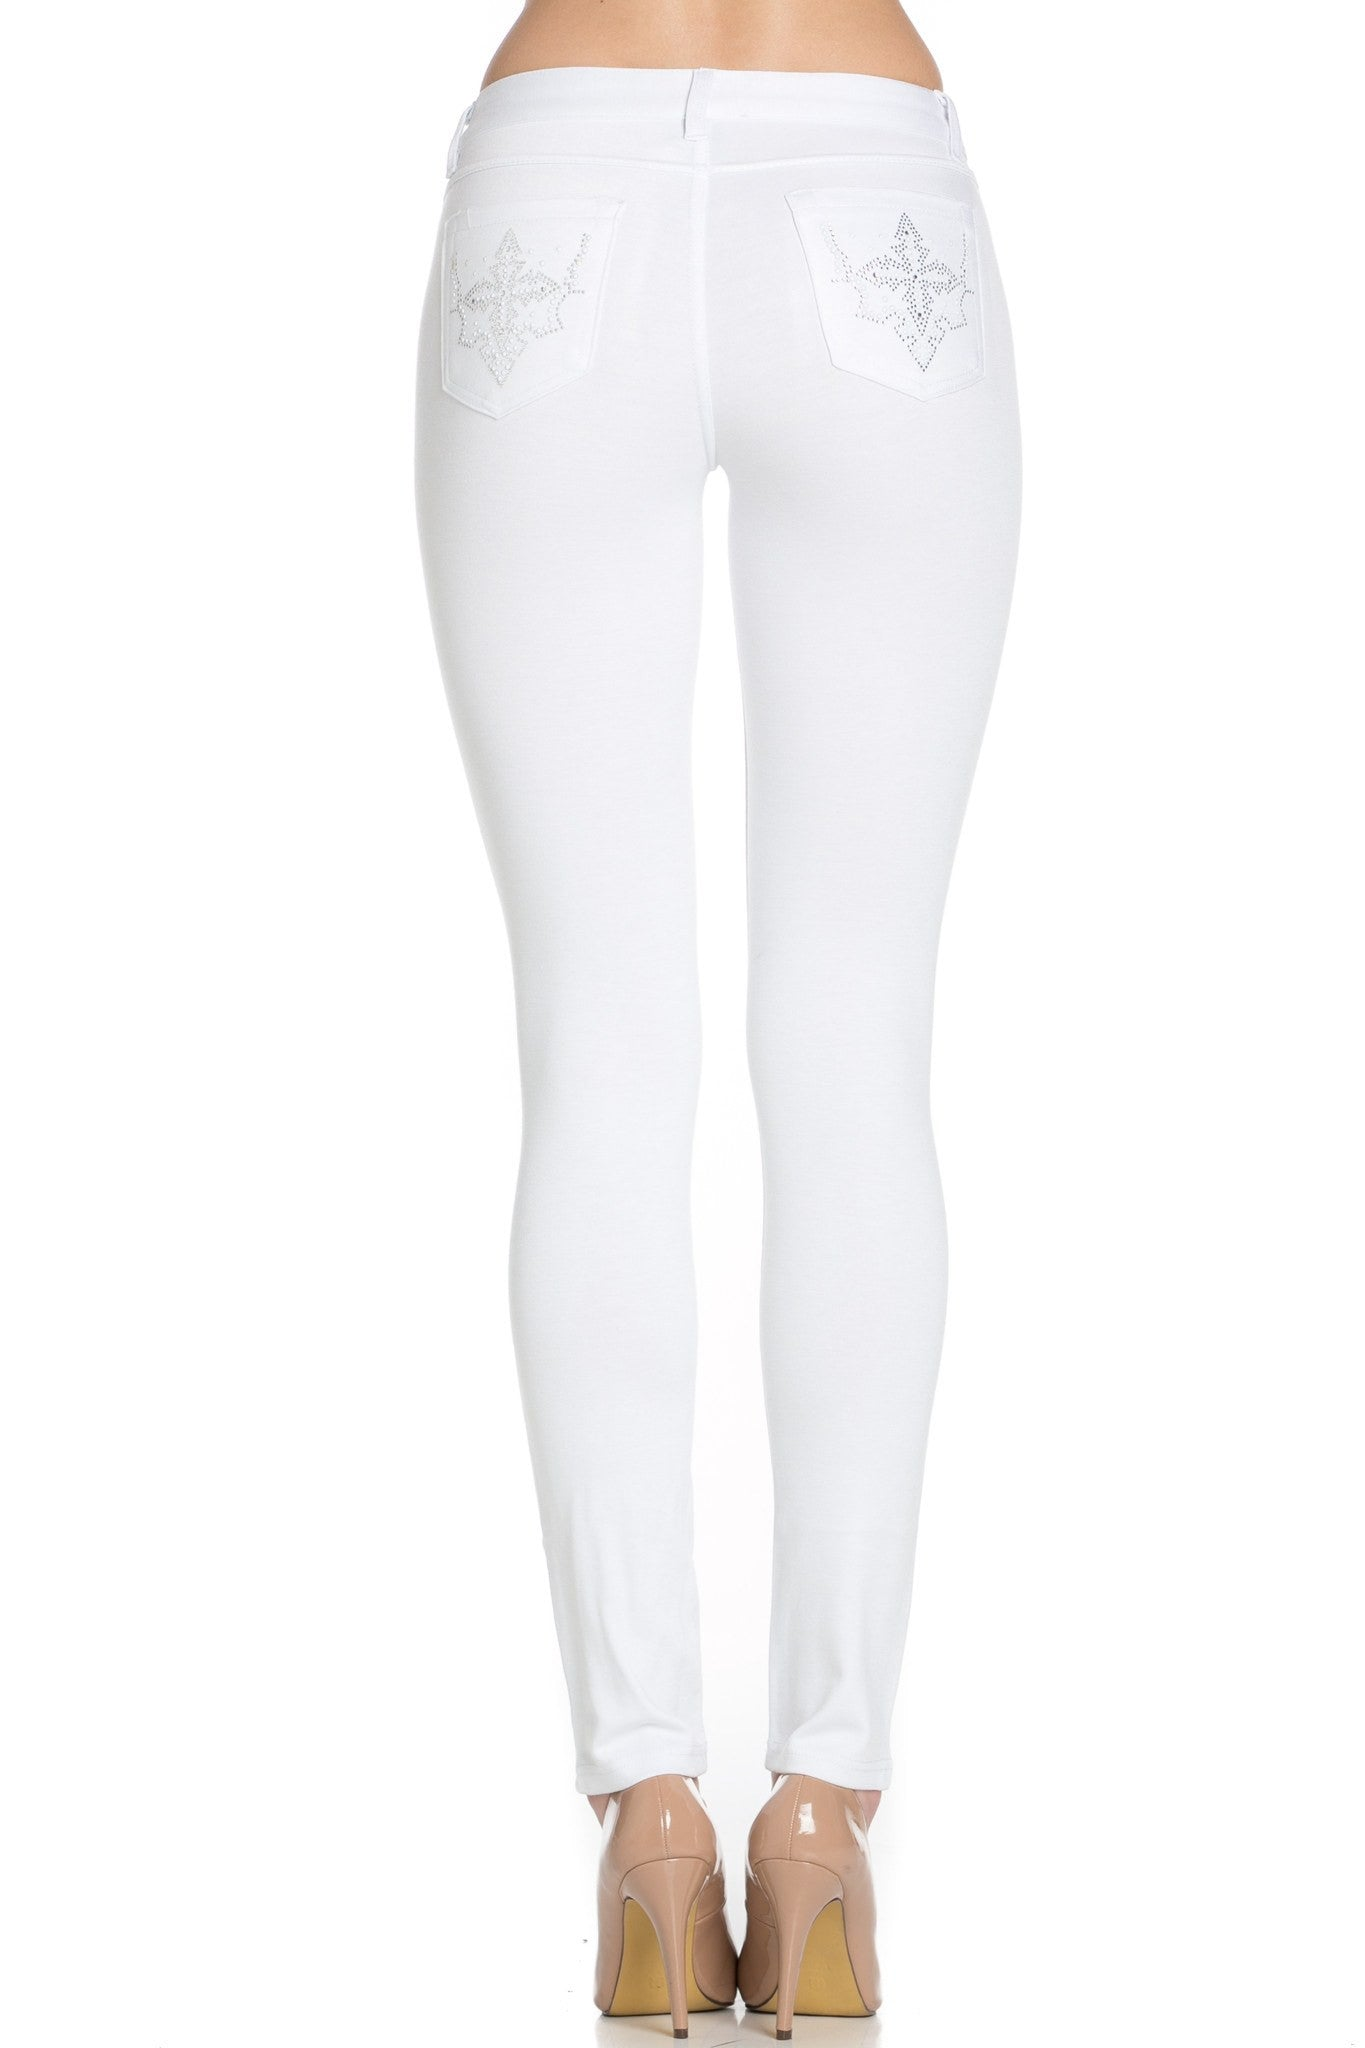 Embellished Ponte Knit Jegging Pants (Star) - Poplooks